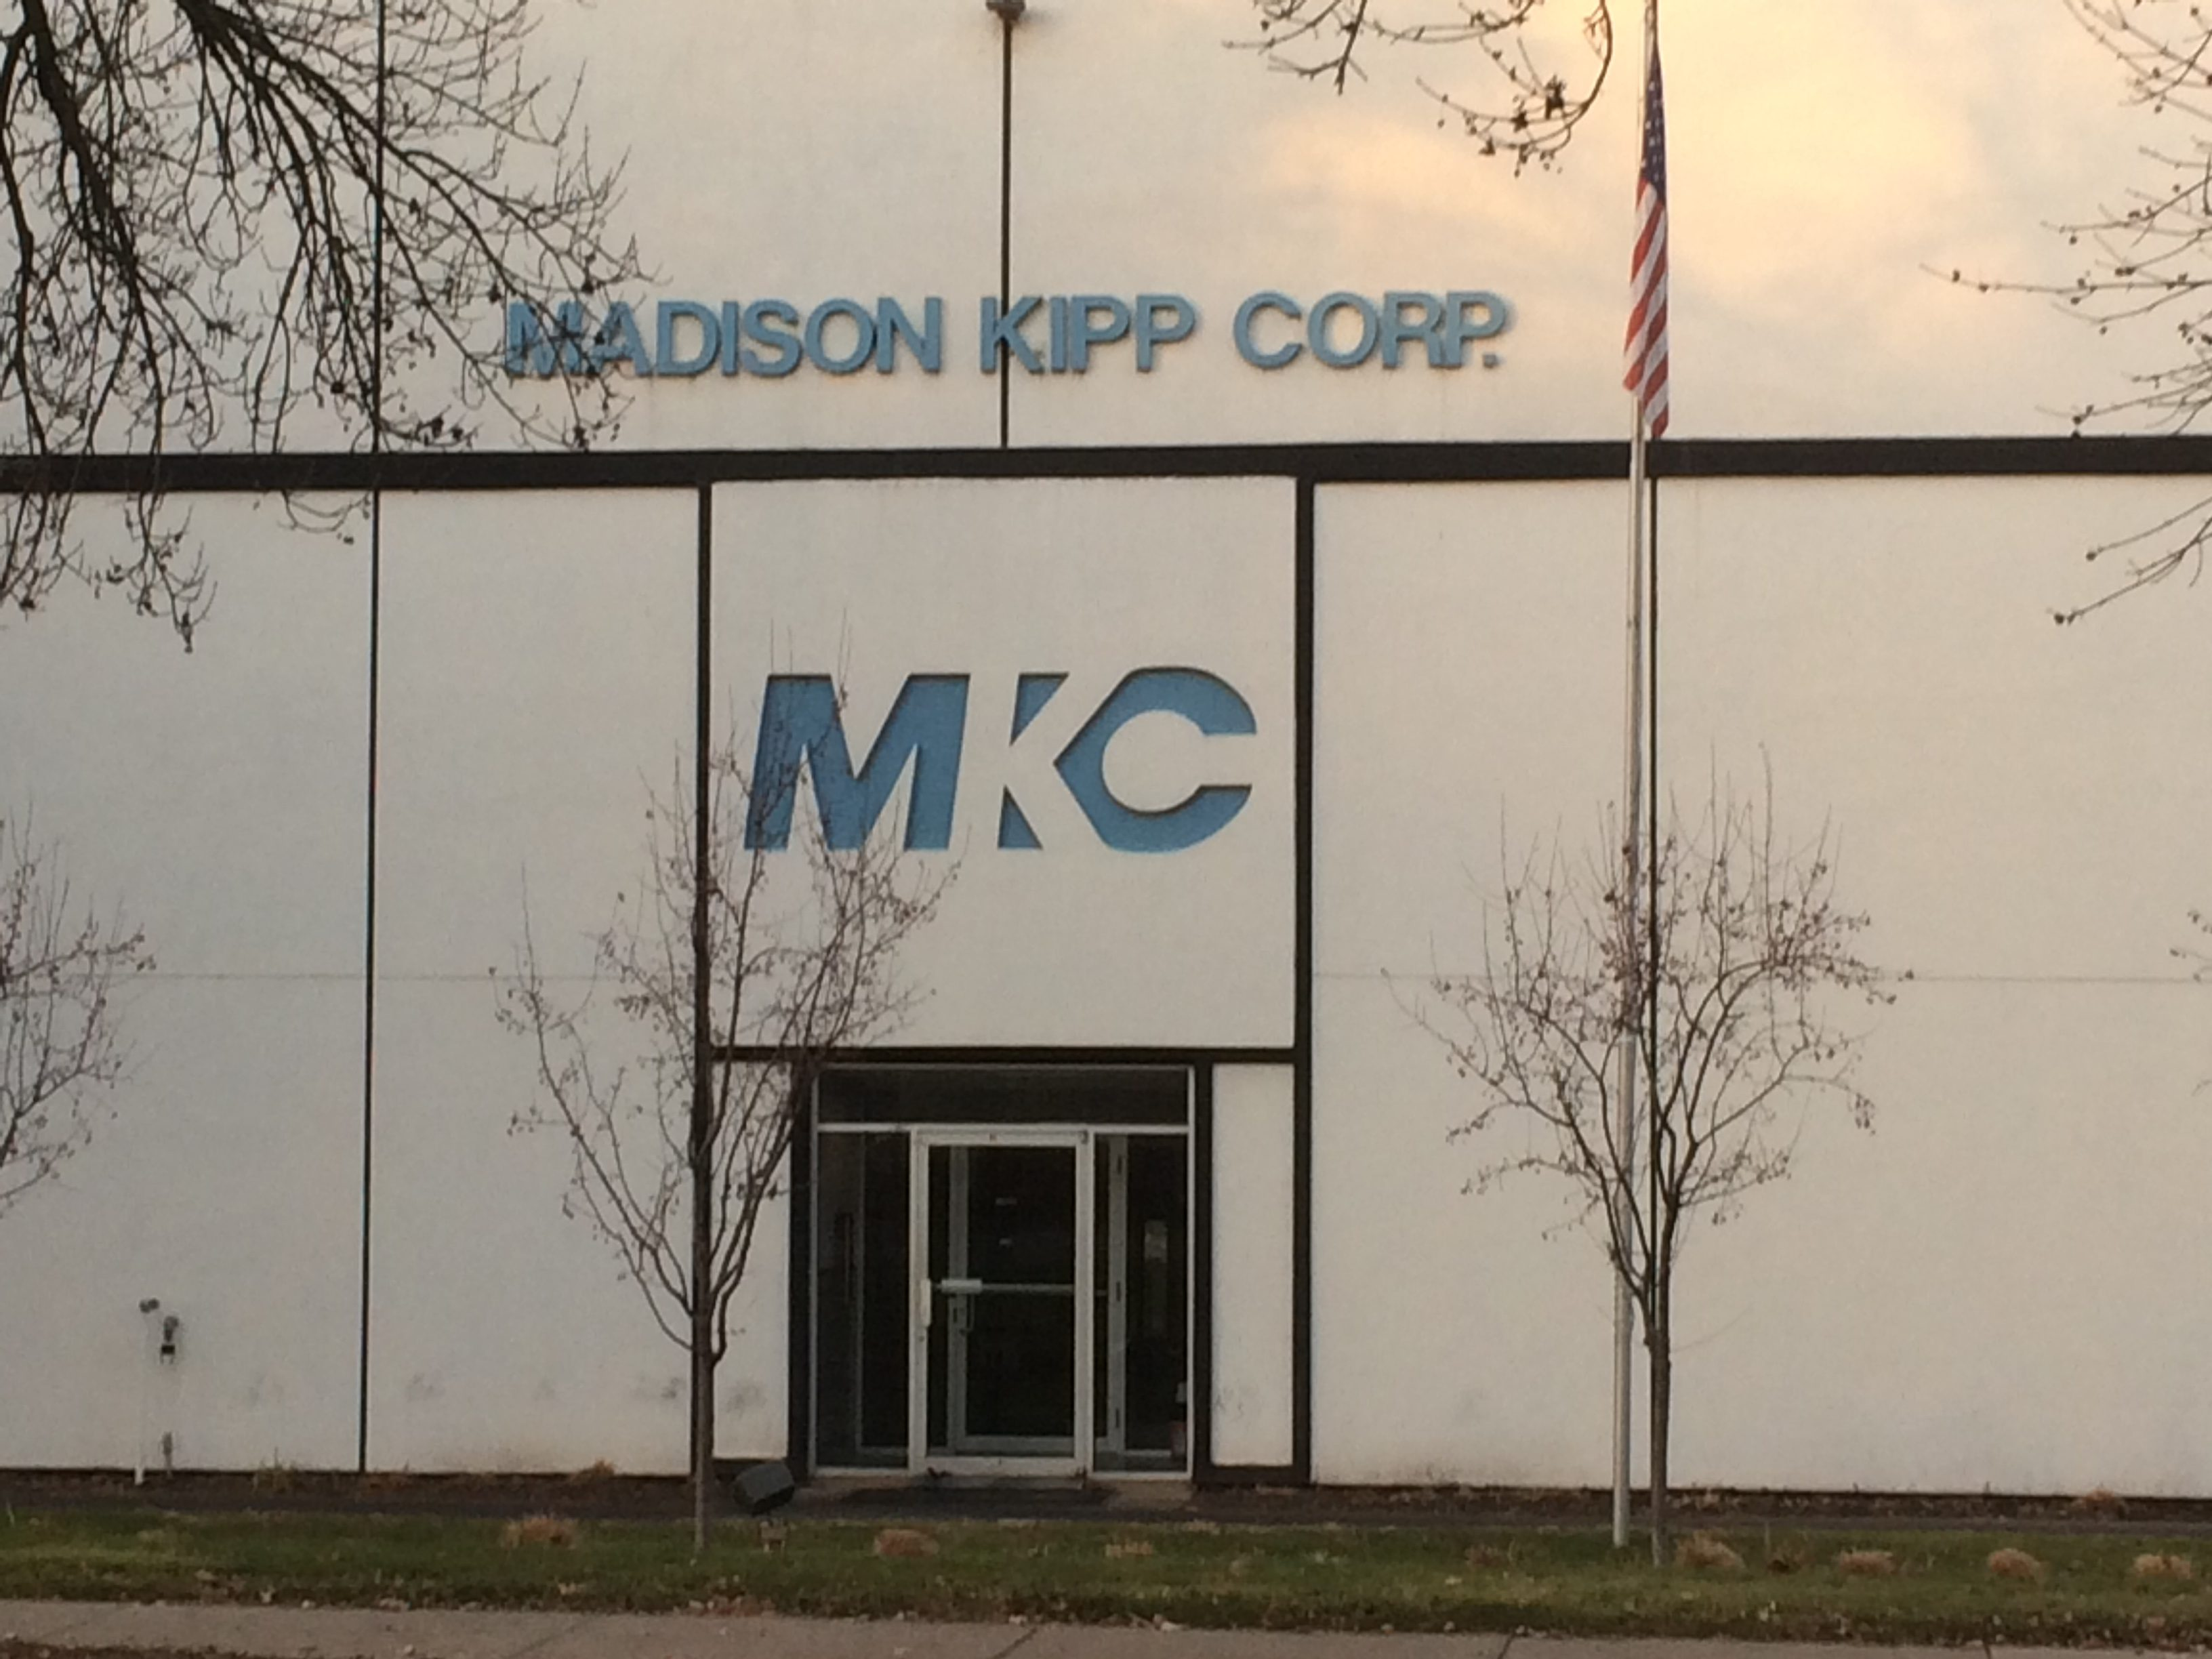 Madison-Kipp Corp. settles pollution lawsuit for $350,000